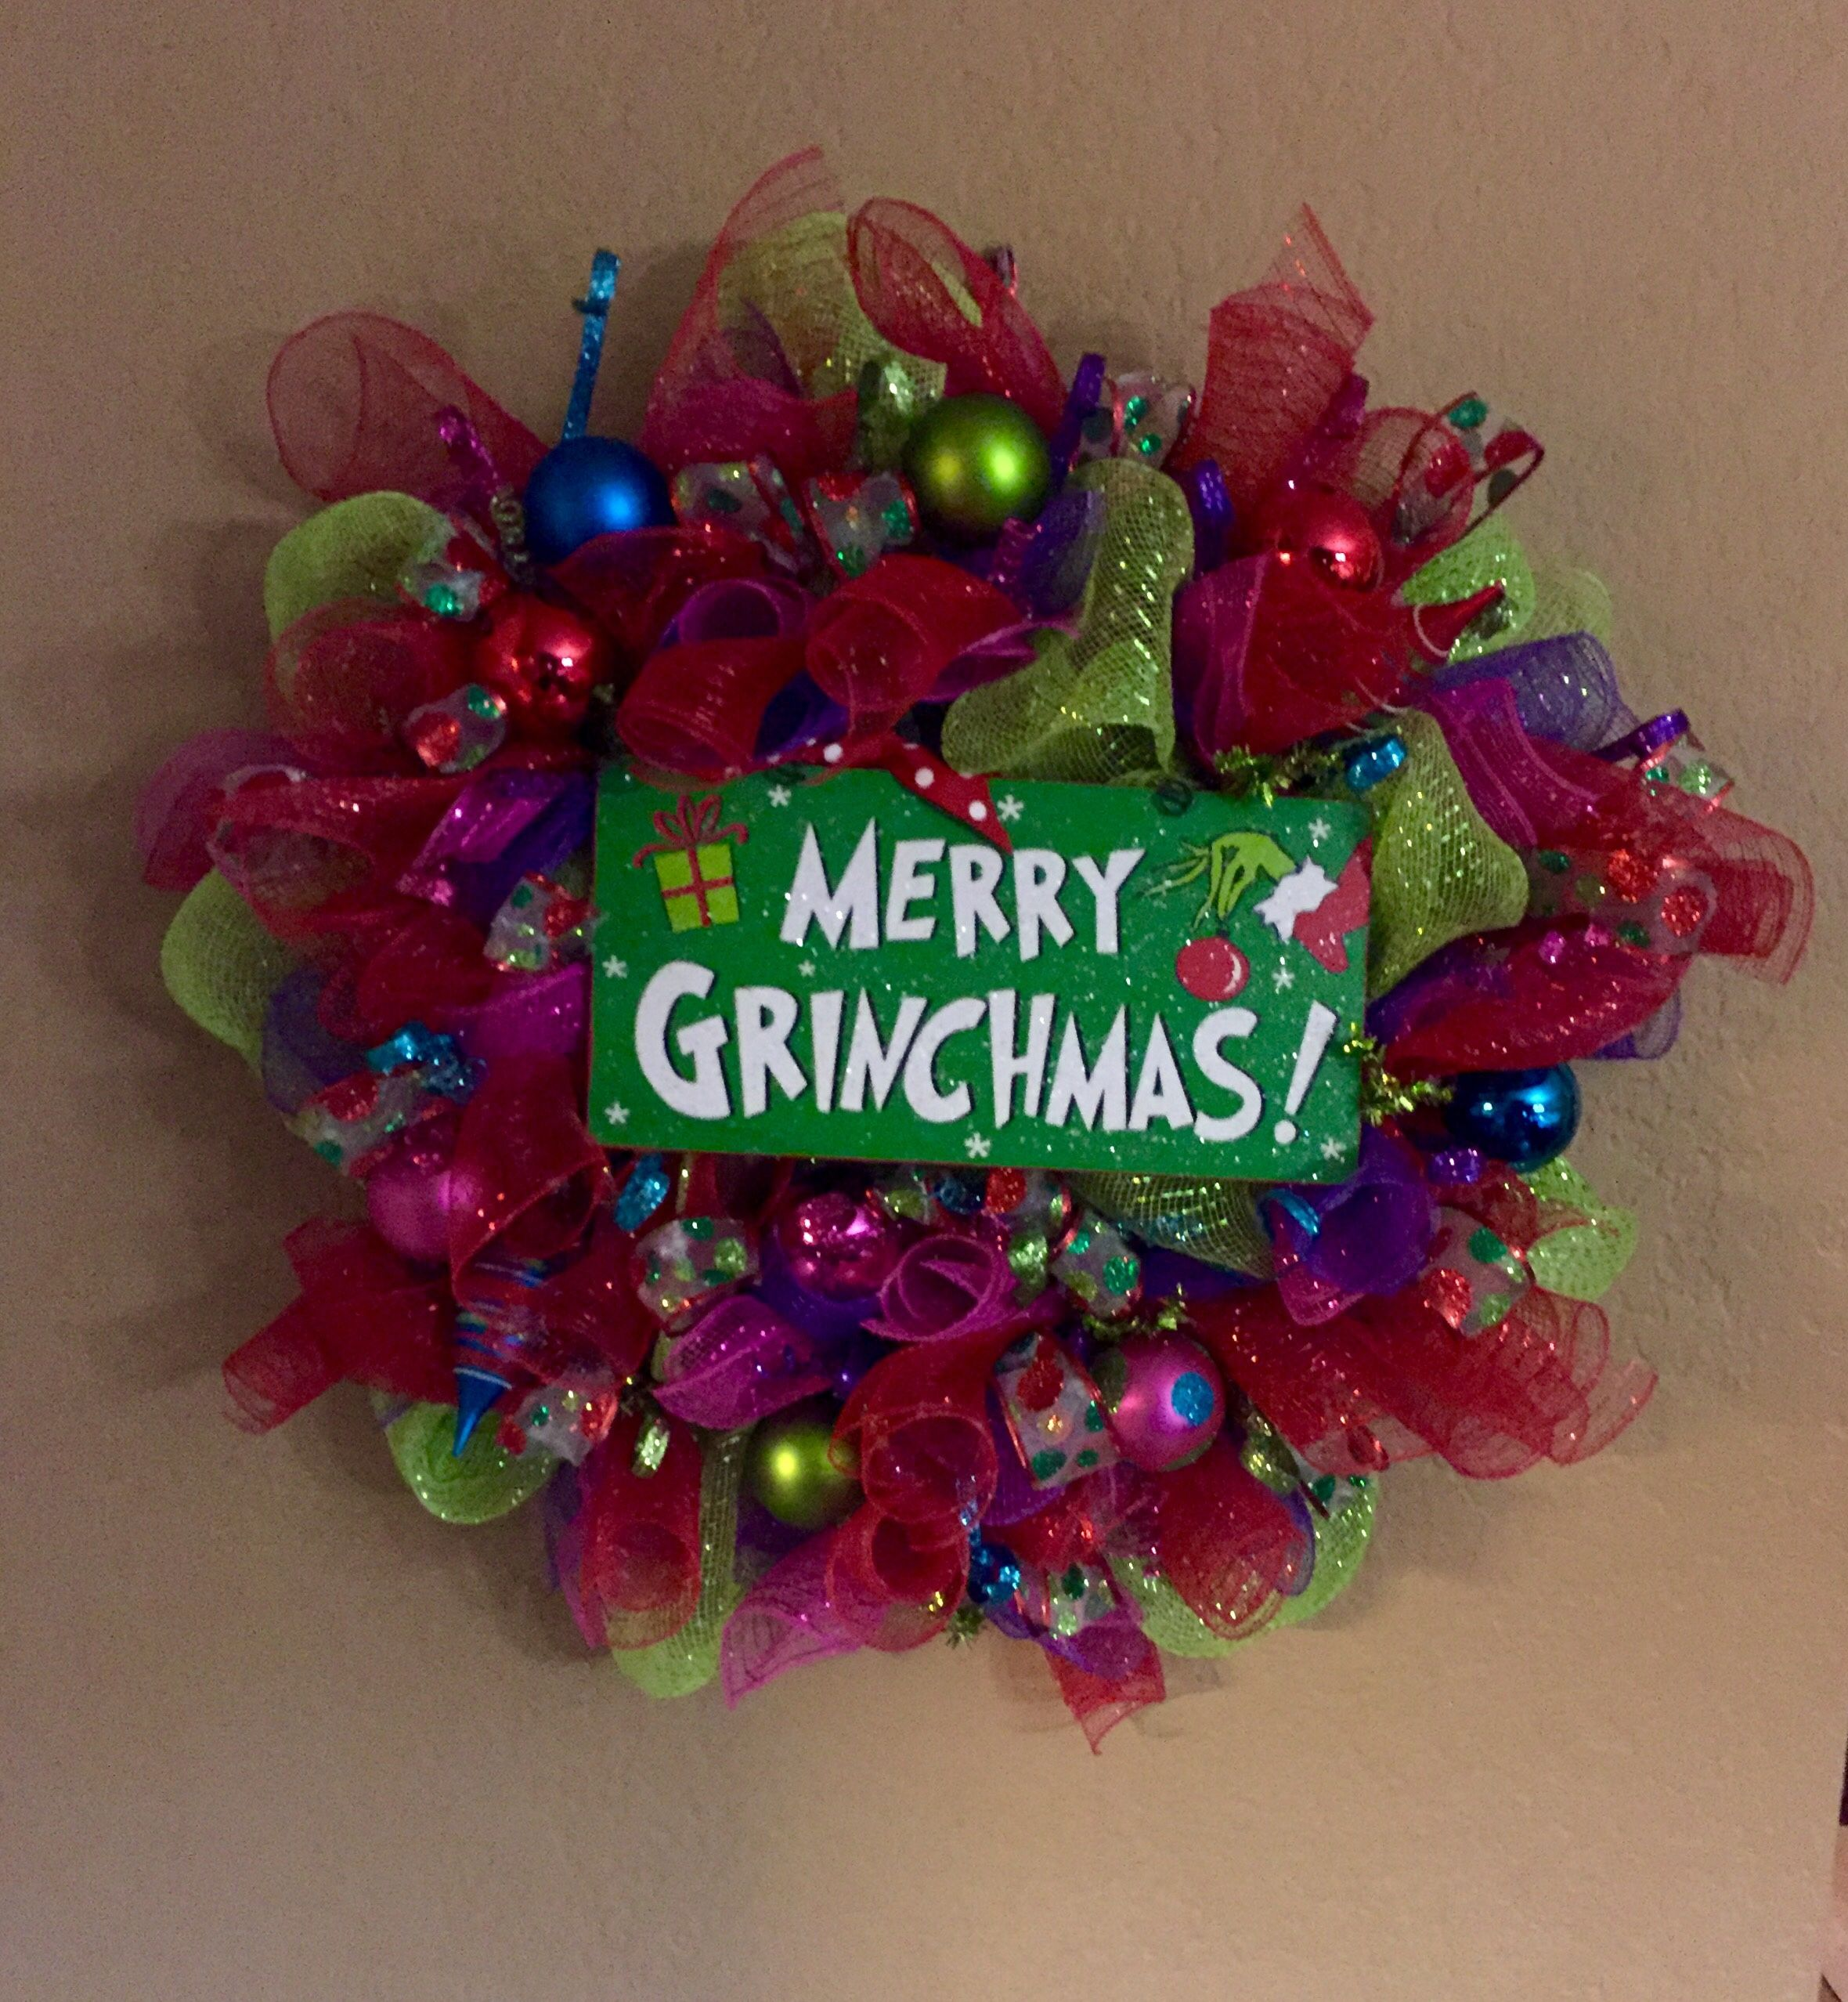 Merry Grinchmas!! Love this one! So very colorful!